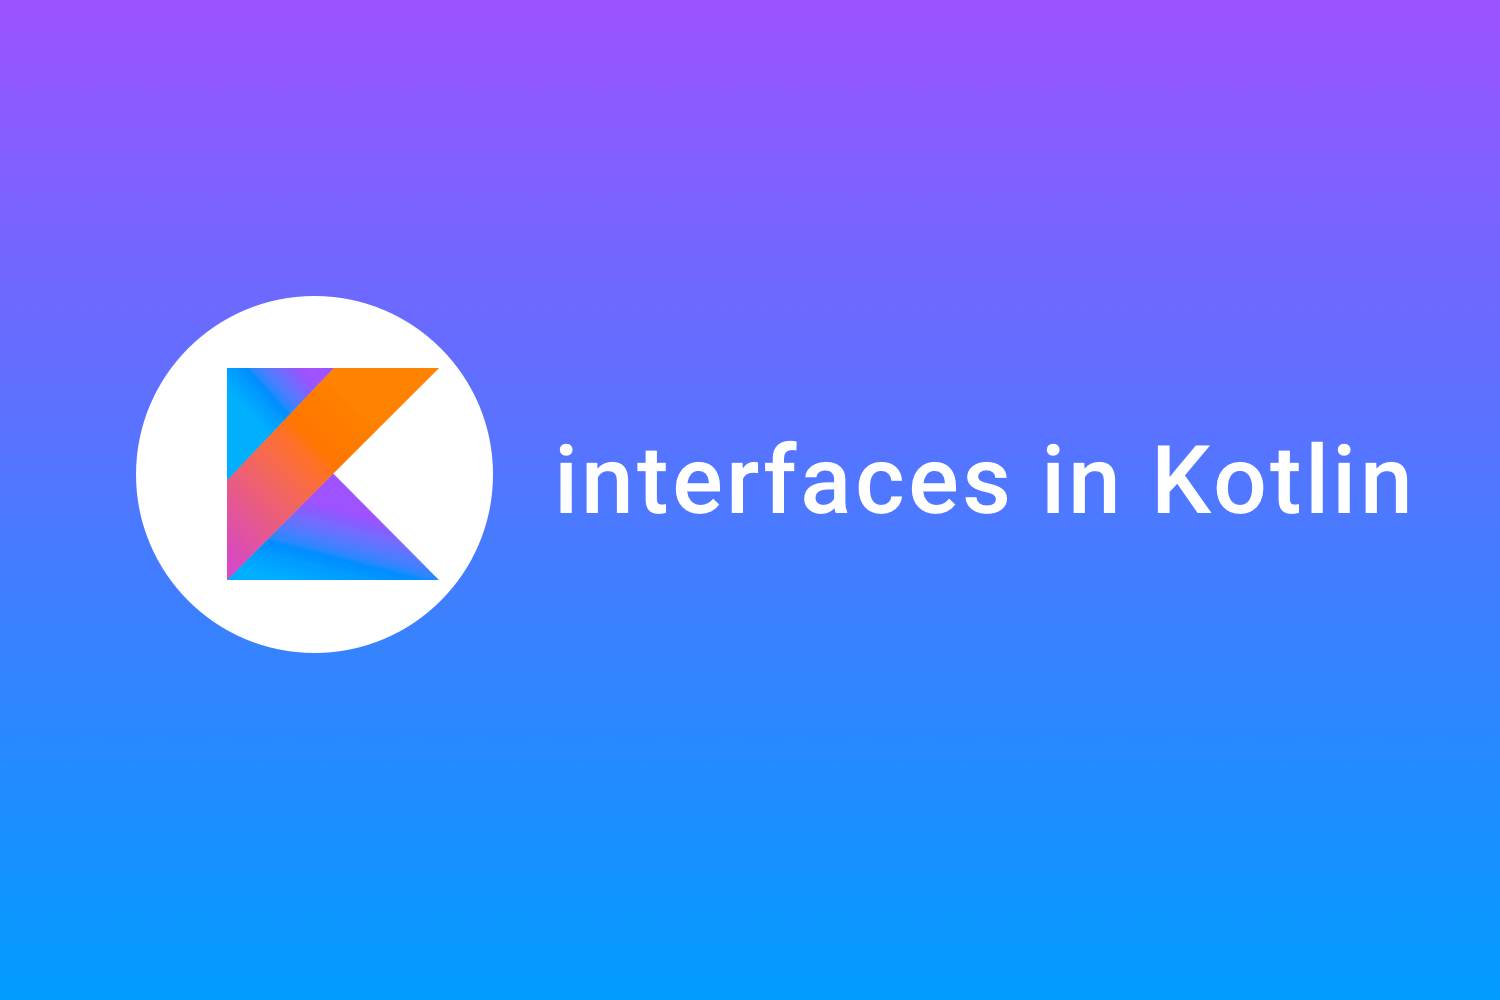 Interfaces in Kotlin